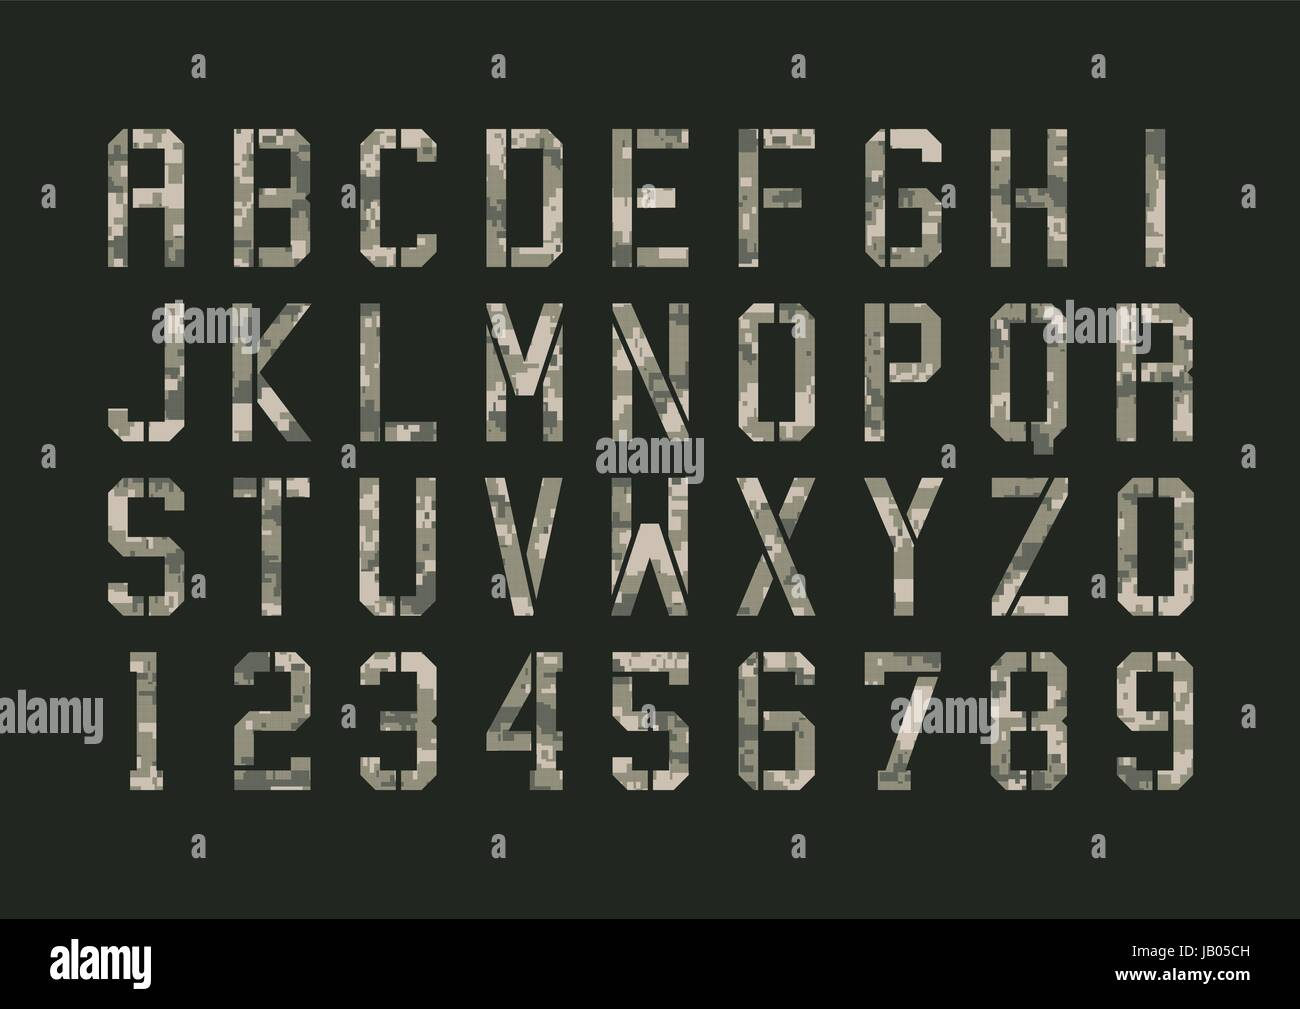 Vector illustration of Military font with pixels camouflage - Stock Image